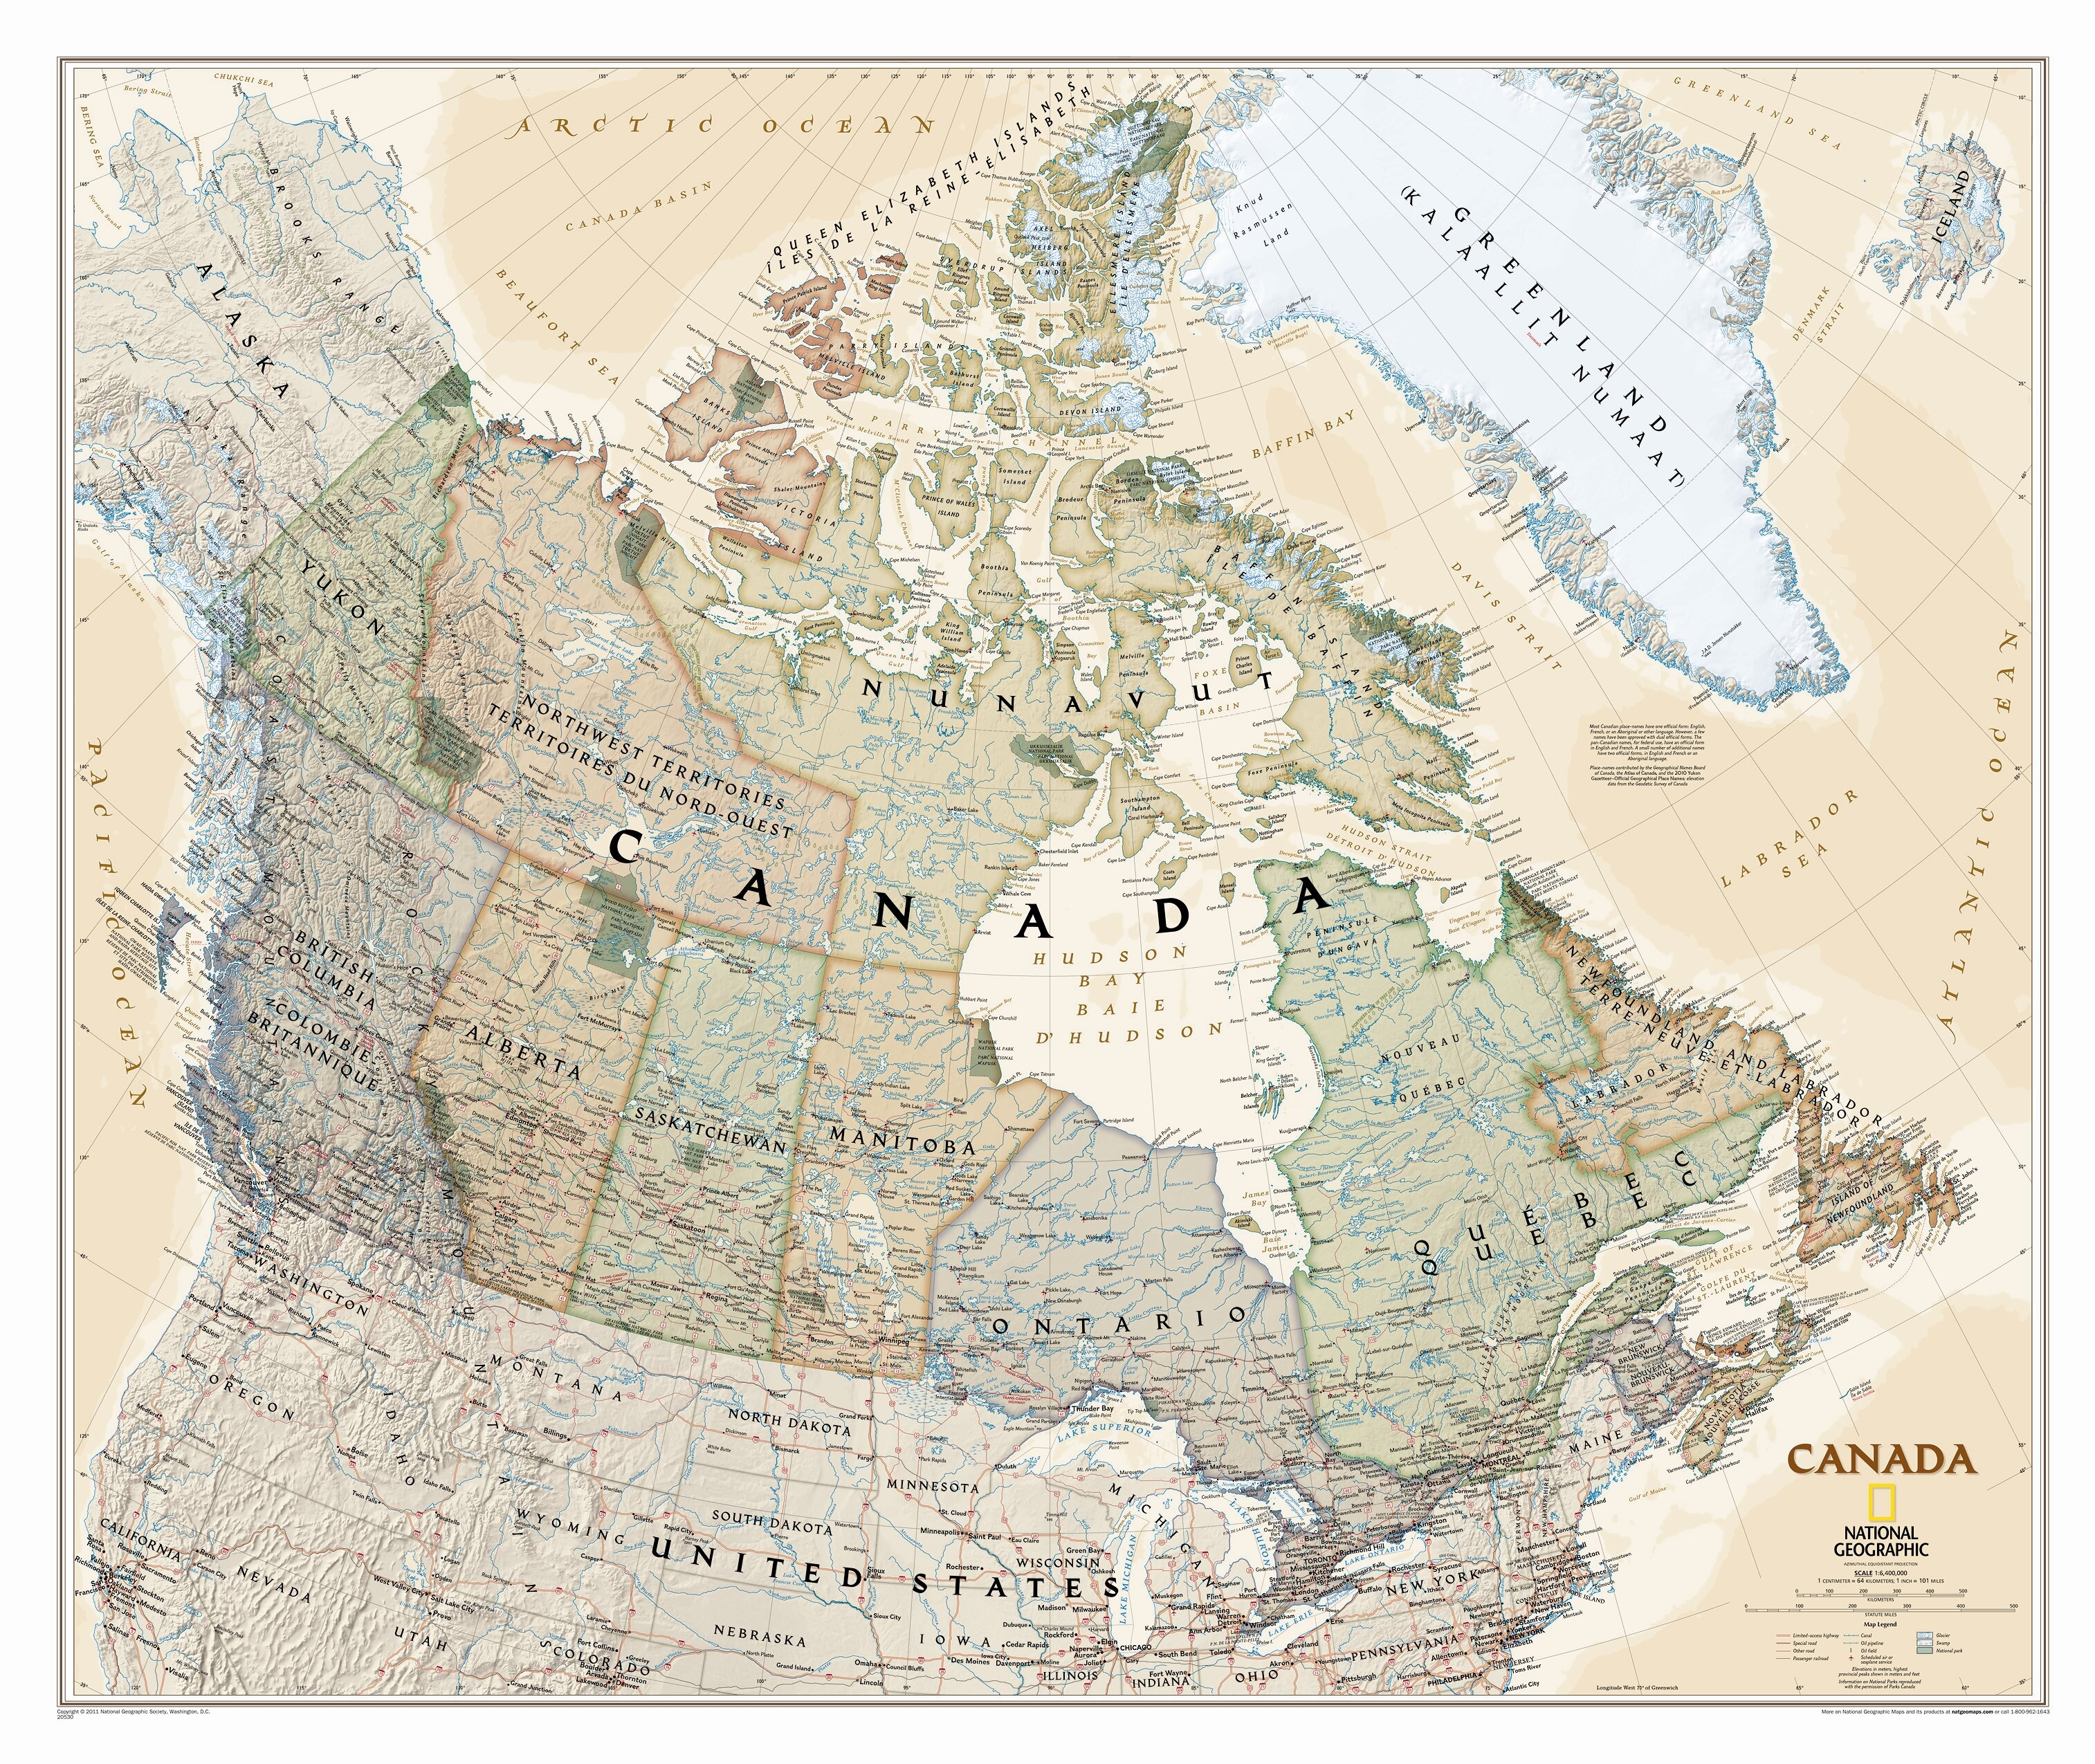 National Geographic Maps Canada Executive Wall Map   Wayfair on